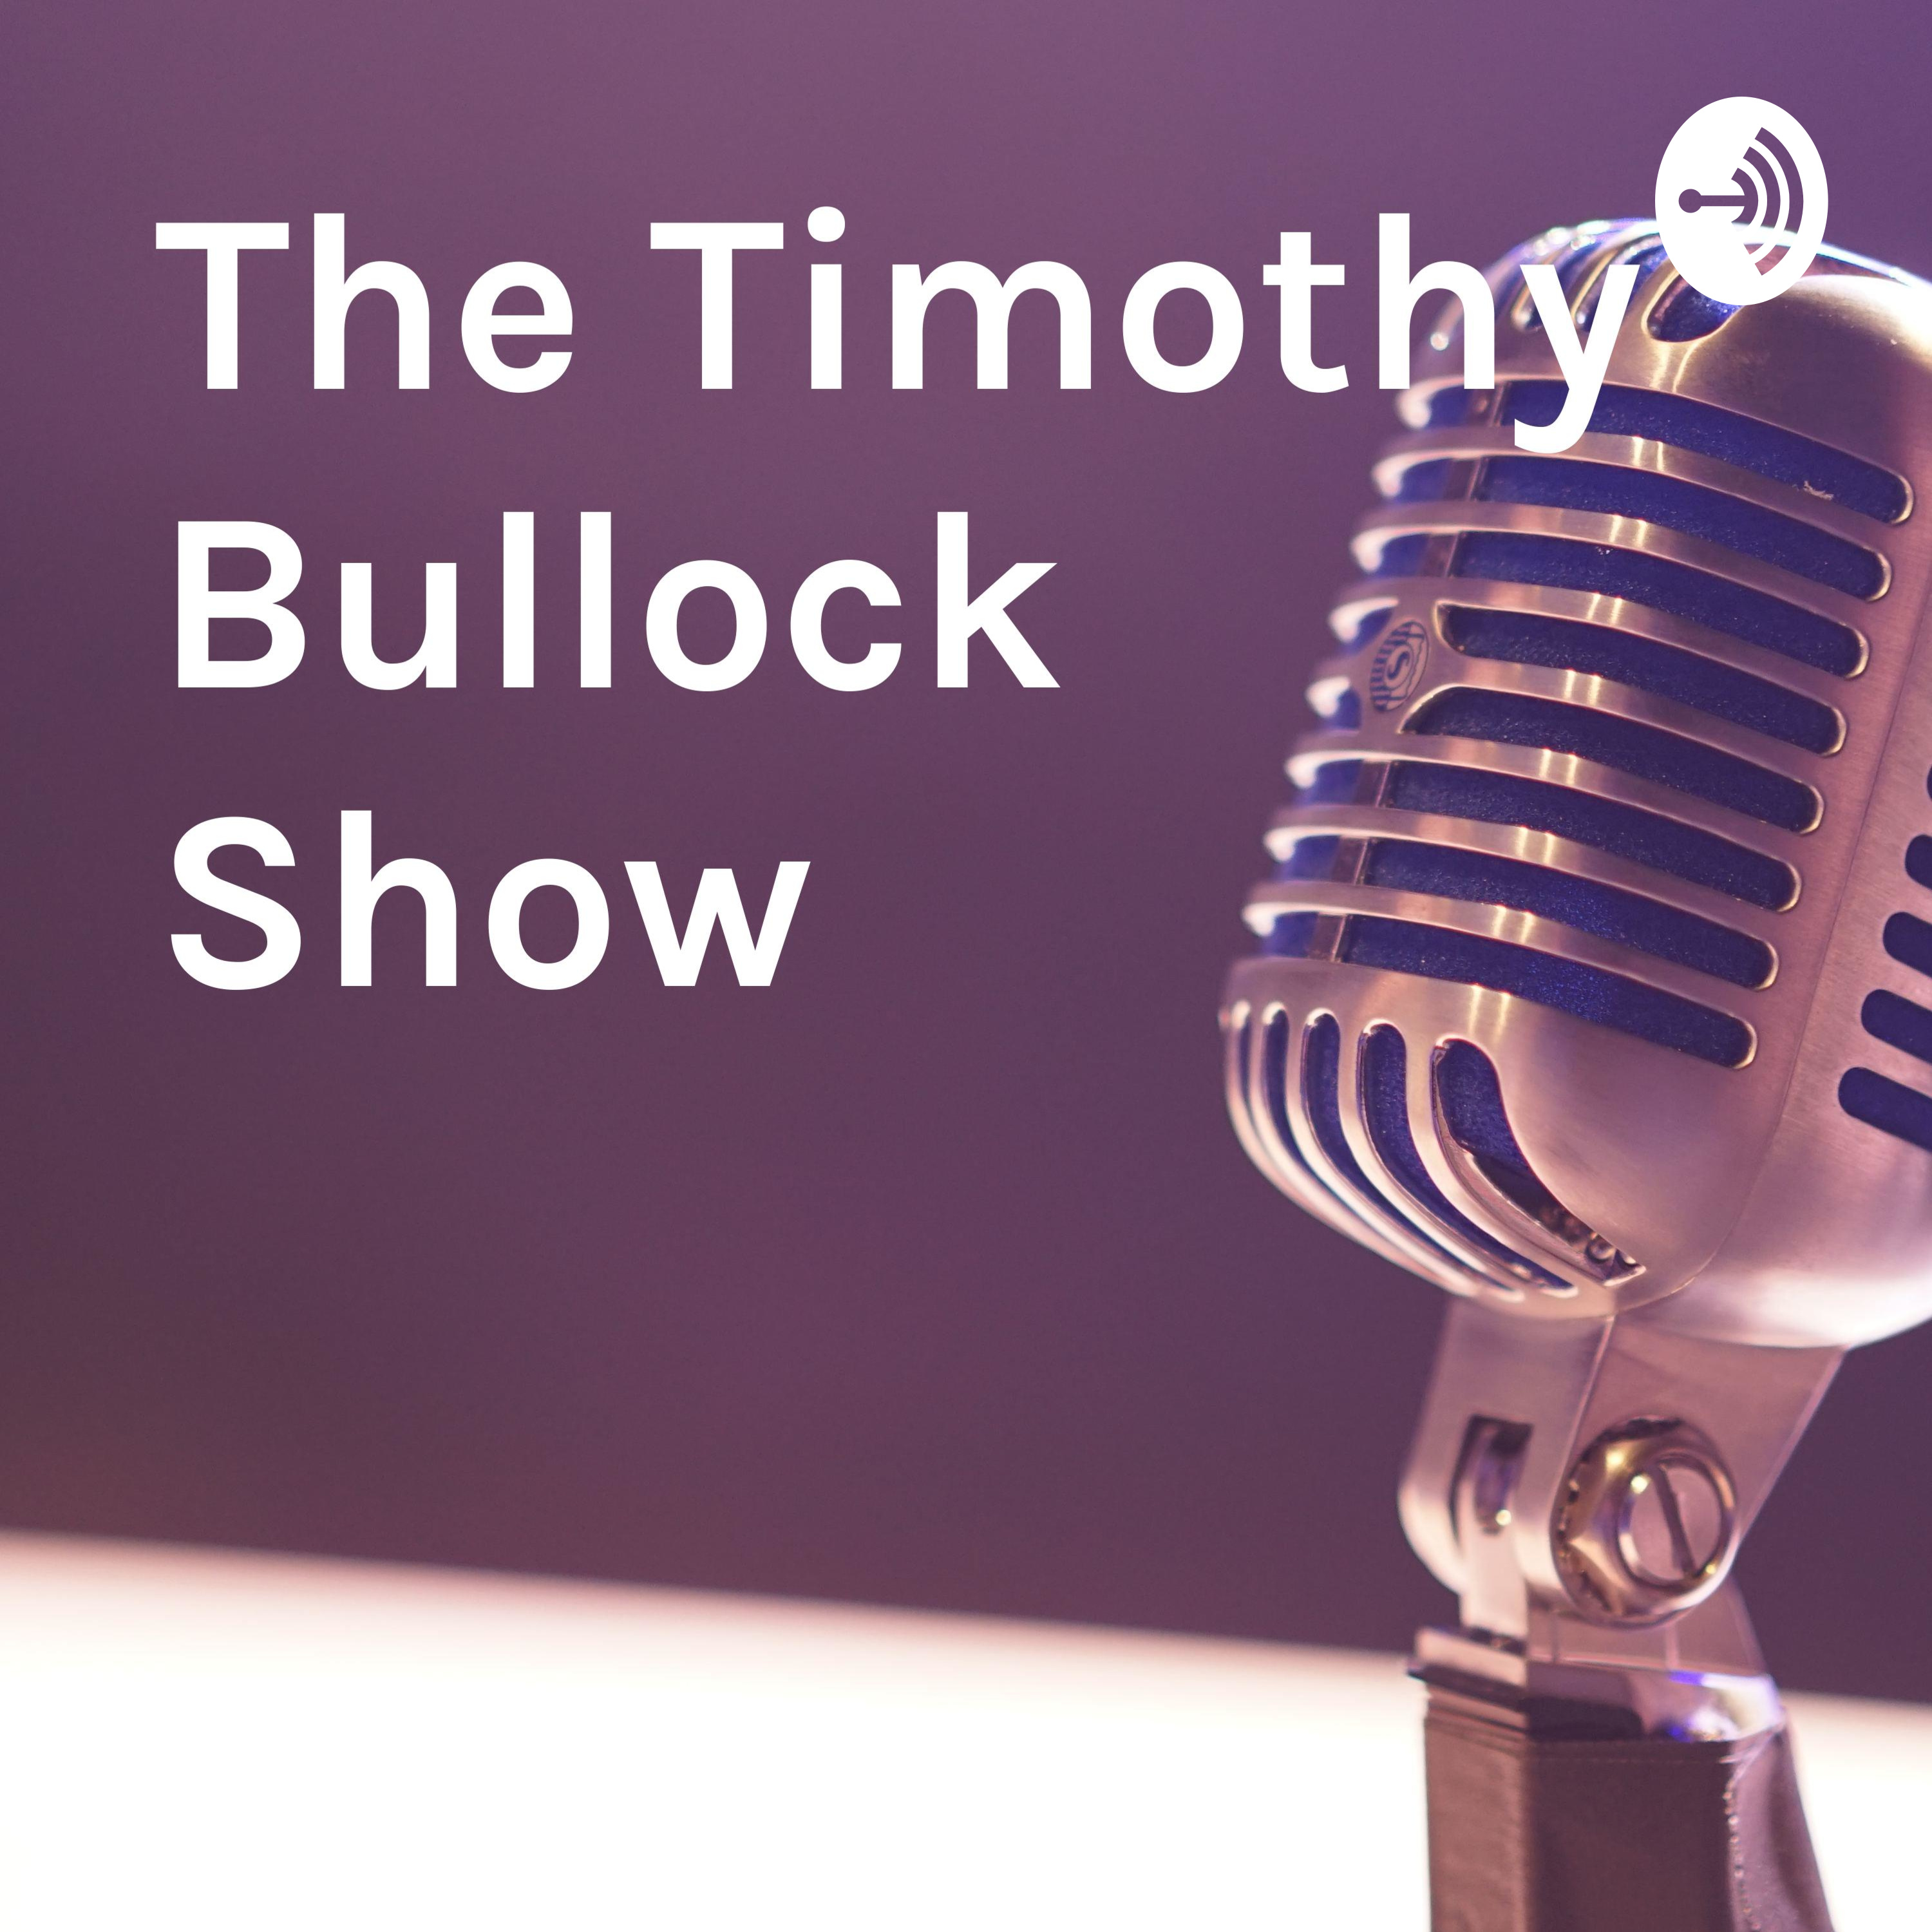 Starting the Timothy Bullock Show off right!